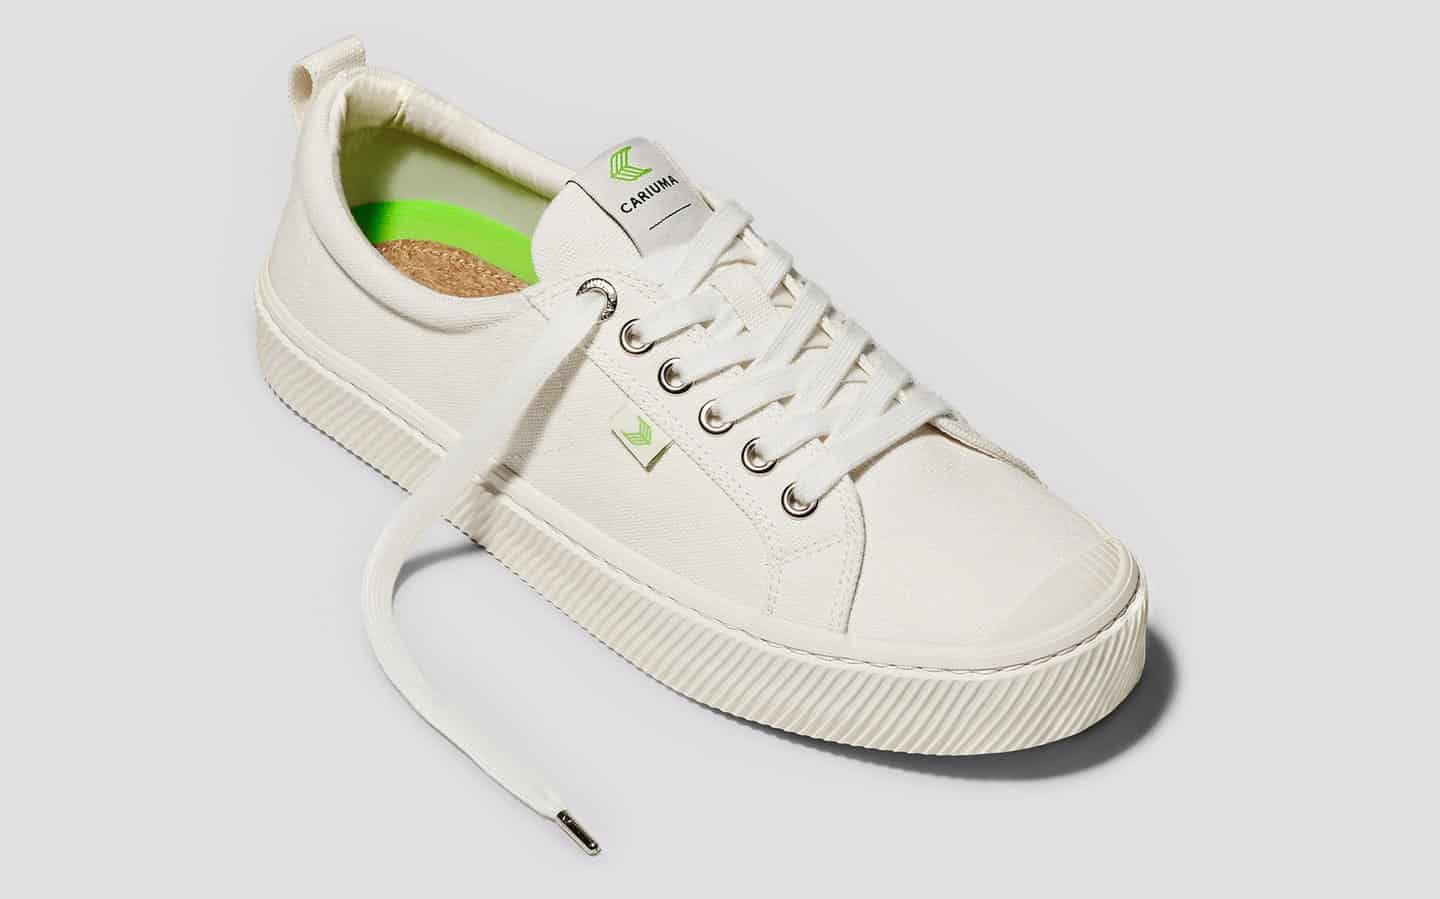 oca-low-off-white-canvas-sneaker.feature-1_1440x